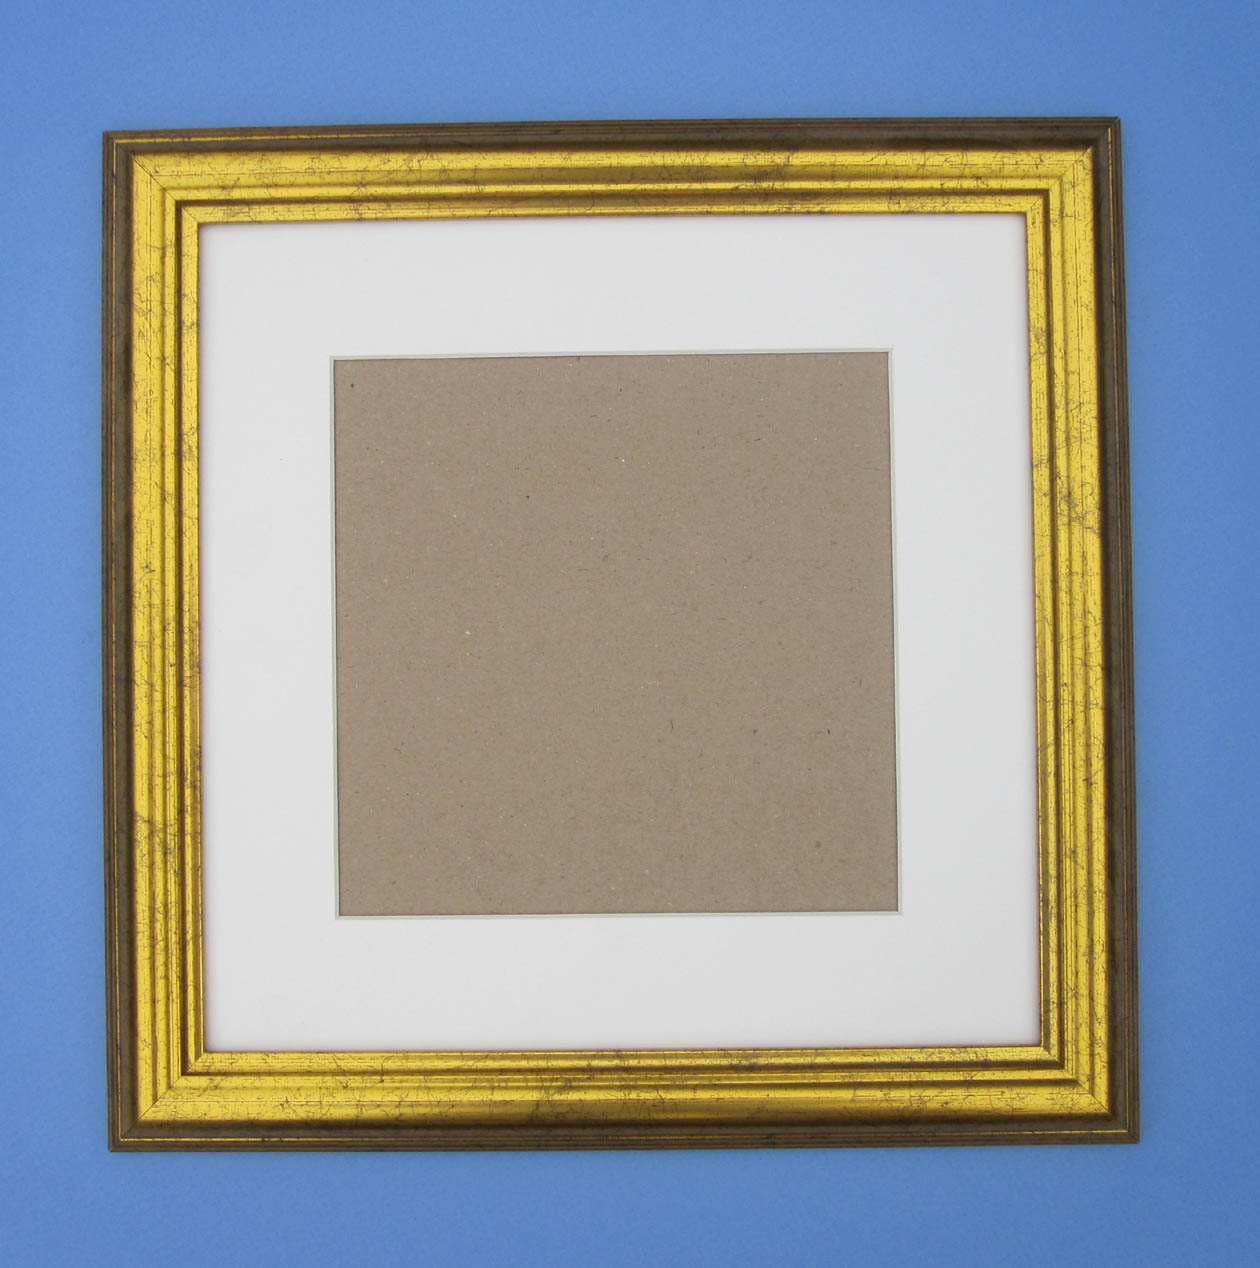 16X16 READY MADE PICTURE FRAMES